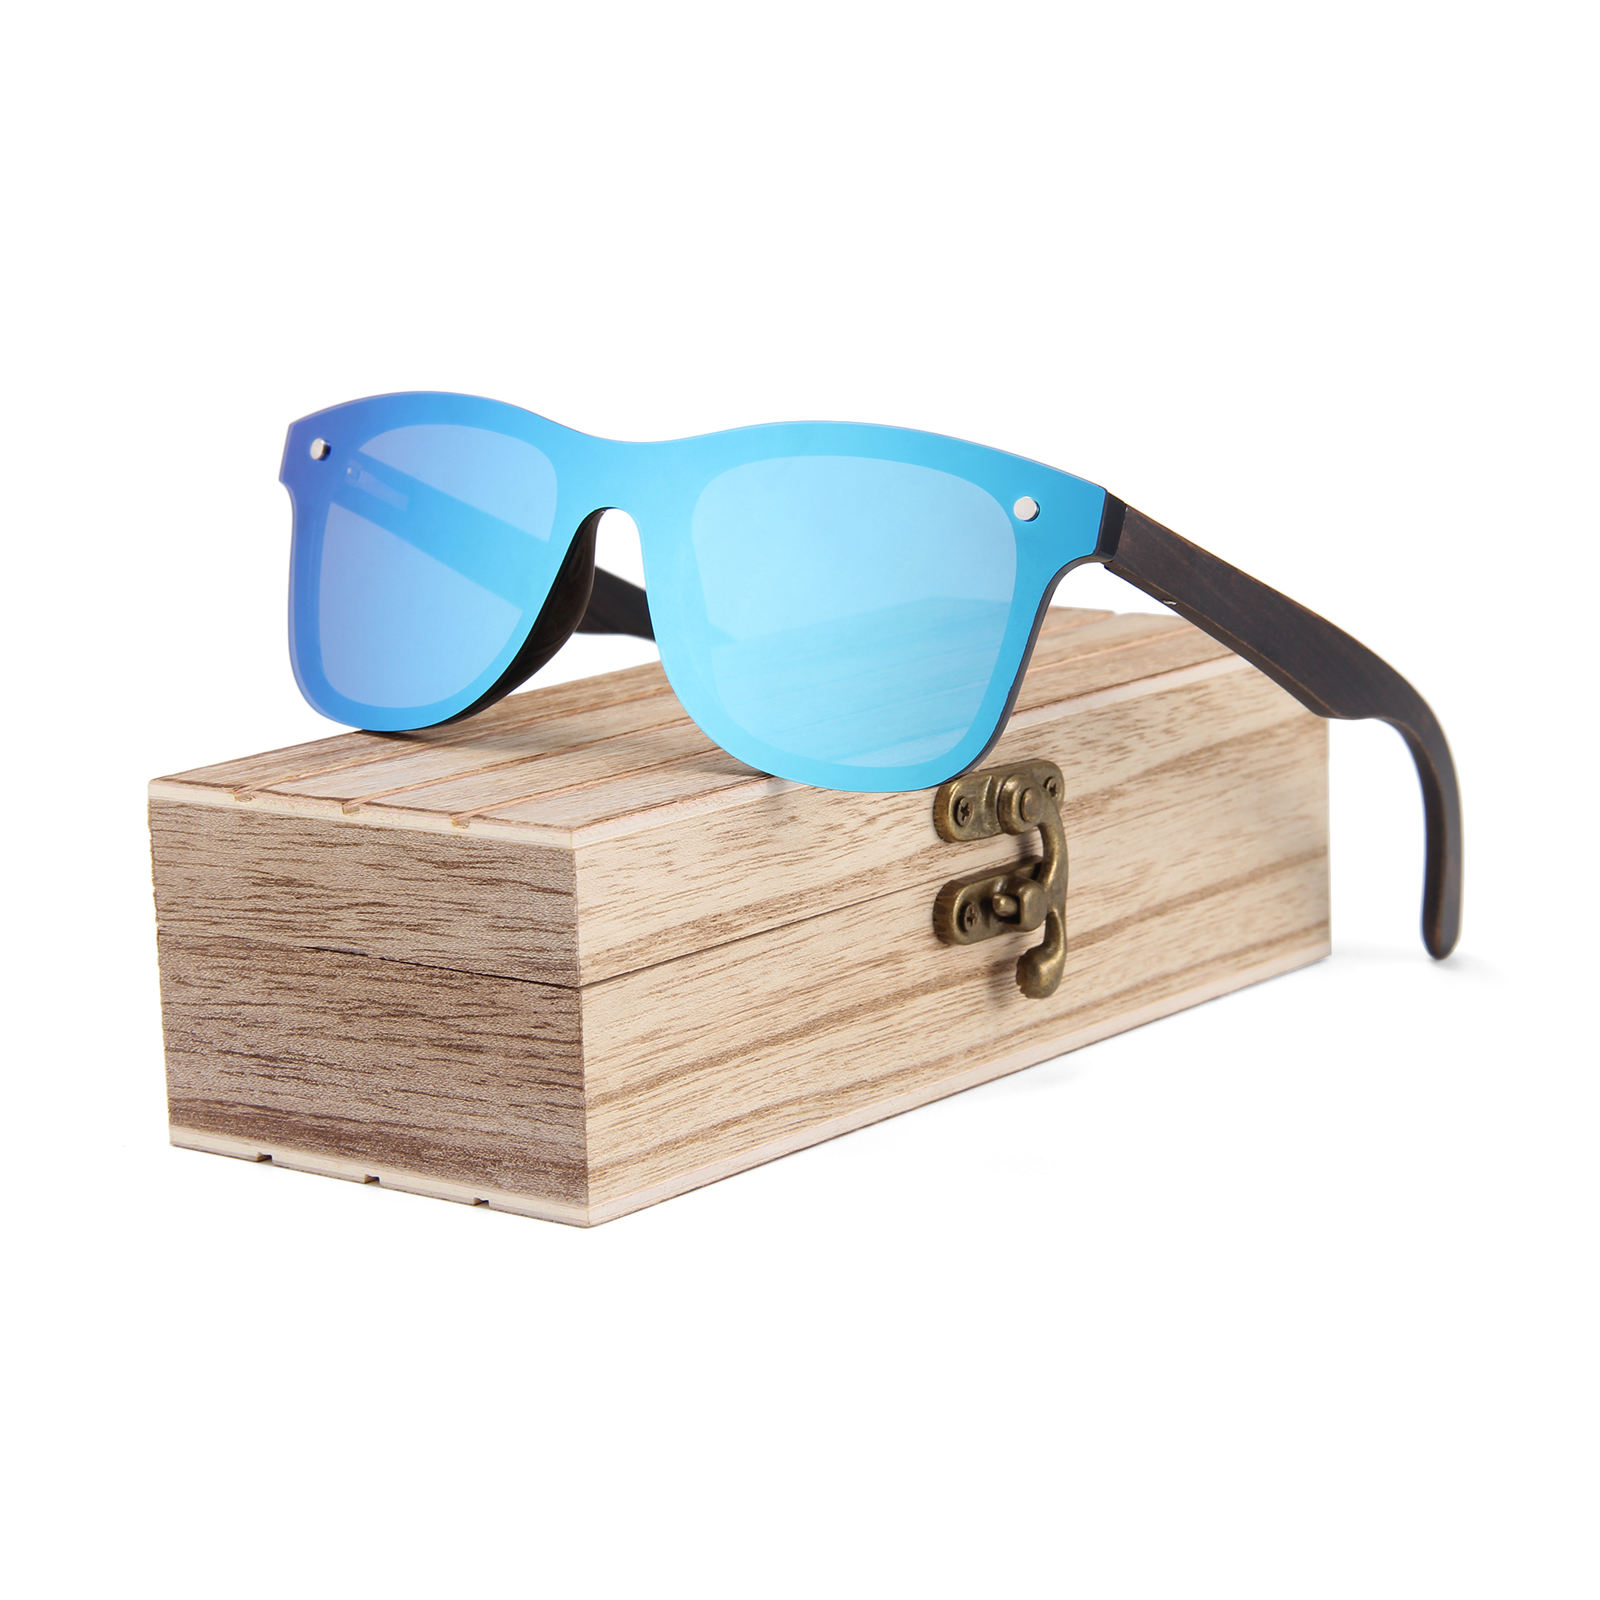 Fashion custom logo bambu temple sun glasses wooden polarized sunglasses 2020